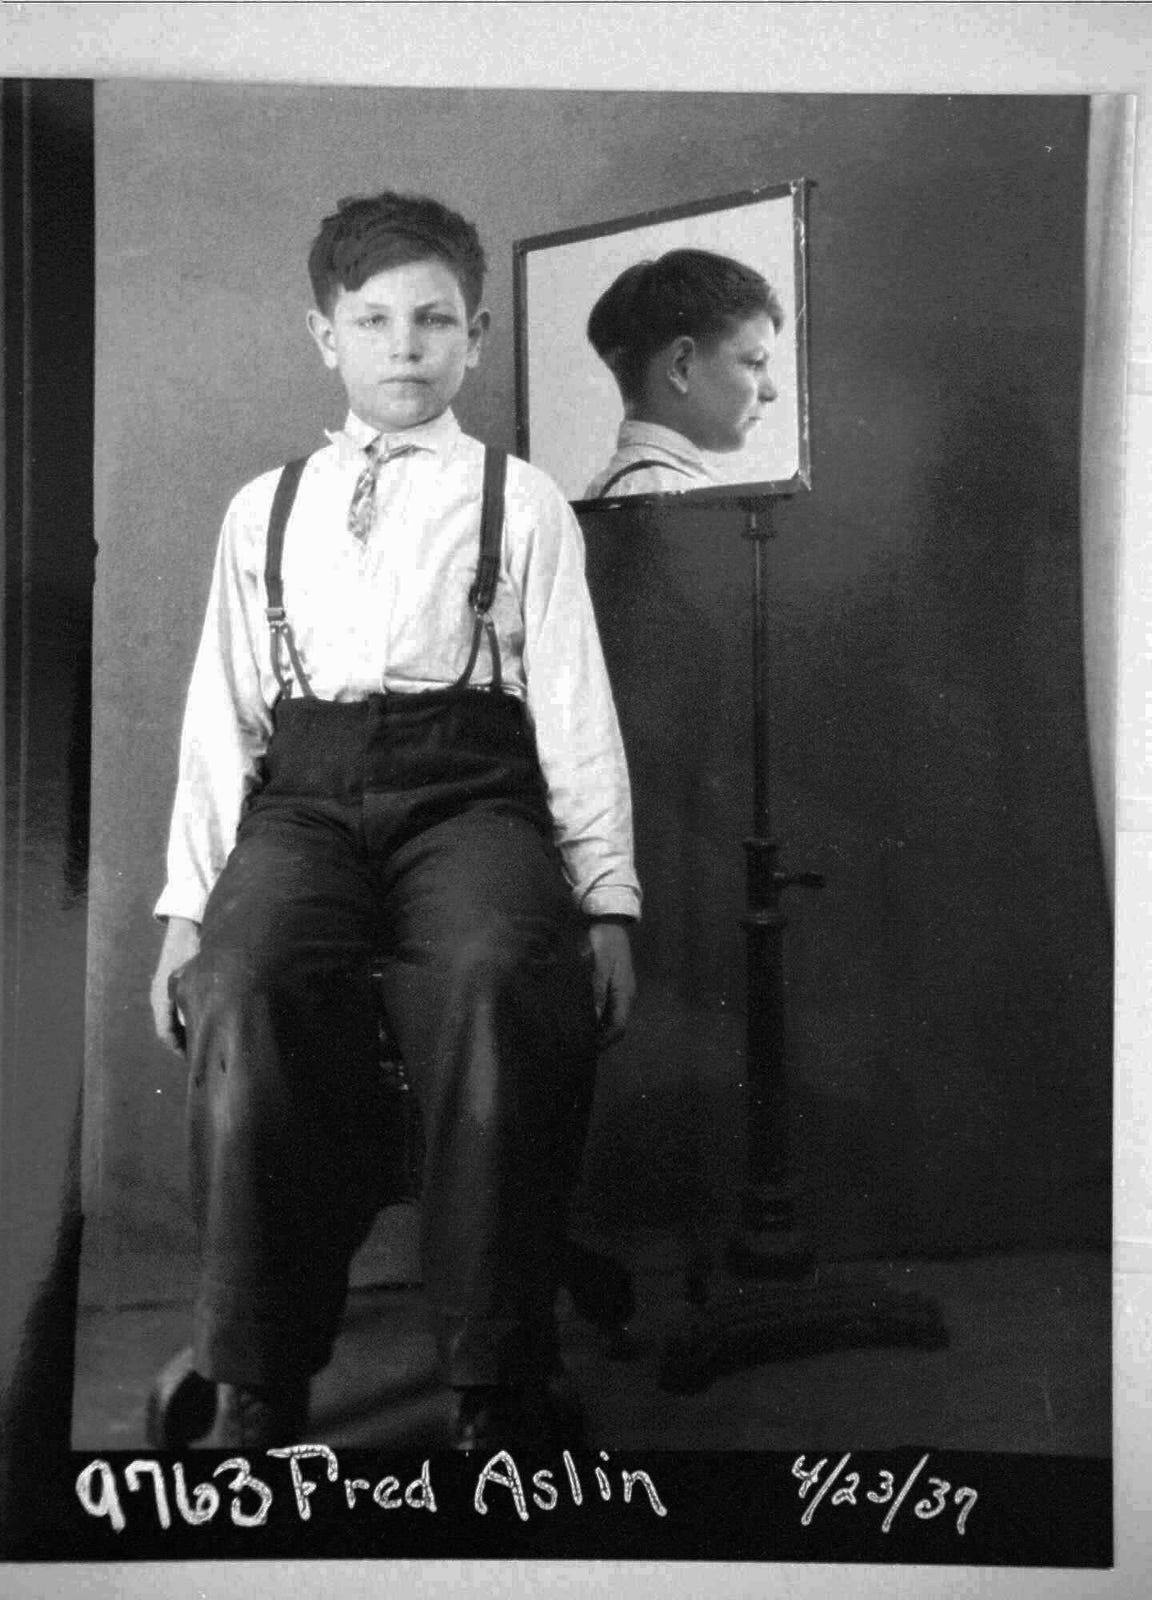 Fred Aslin, shown in an April 23, 1937 file photo during his time at Lapeer State School in Michigan, was placed in the old-fashiond mental institution after his father died and was taken from his mother's custody. When he turned 18 years old Aslin was sterilized. Aslin sued the state of Michigan in 2000 but the case was dismissed due to the statue of limitations. He died at his home in Charlotte in 2014.